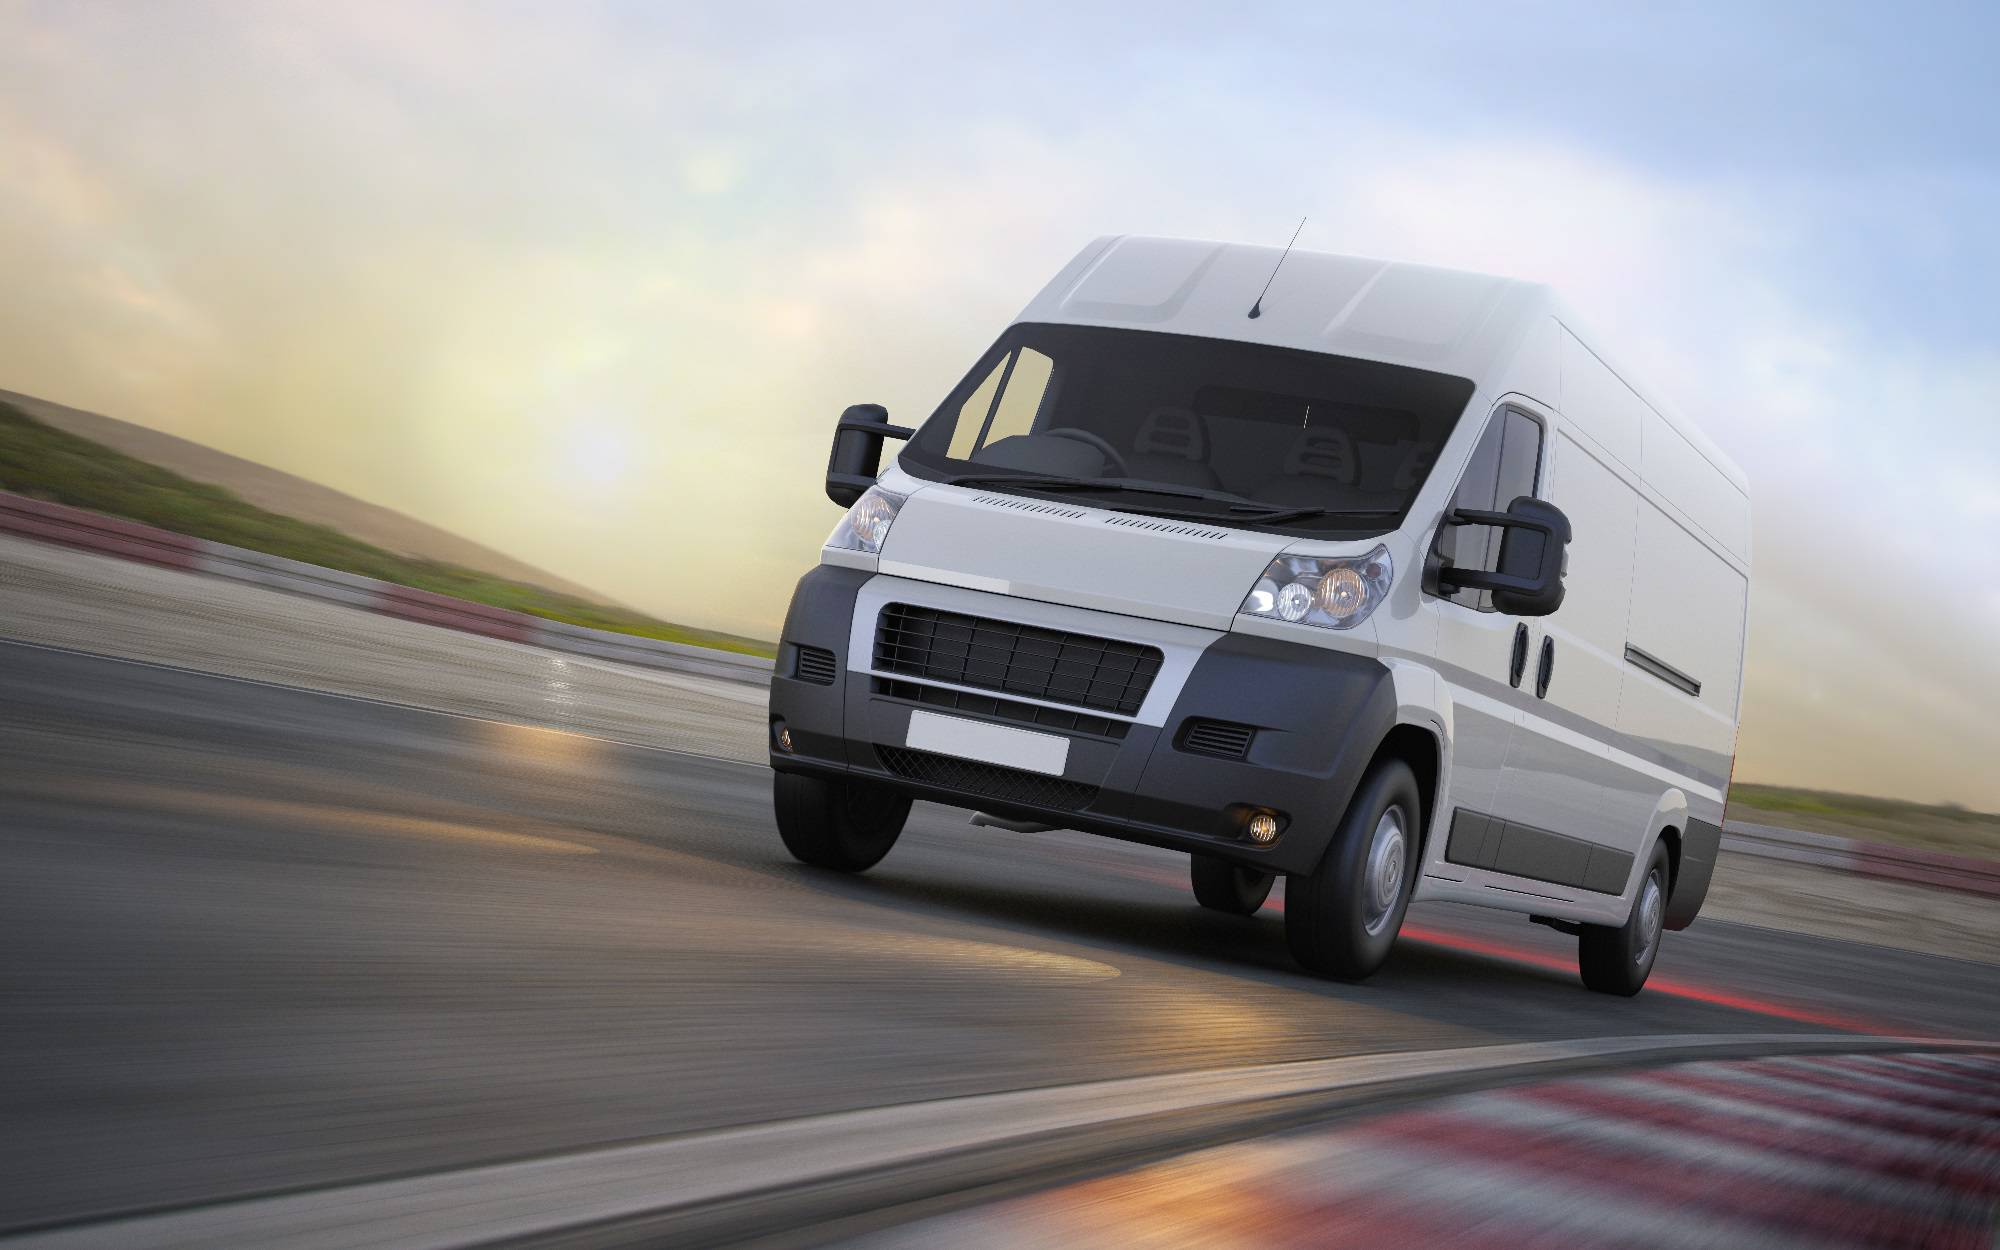 de4299c956 Growing numbers of van drivers are suffering theft from their vehicles